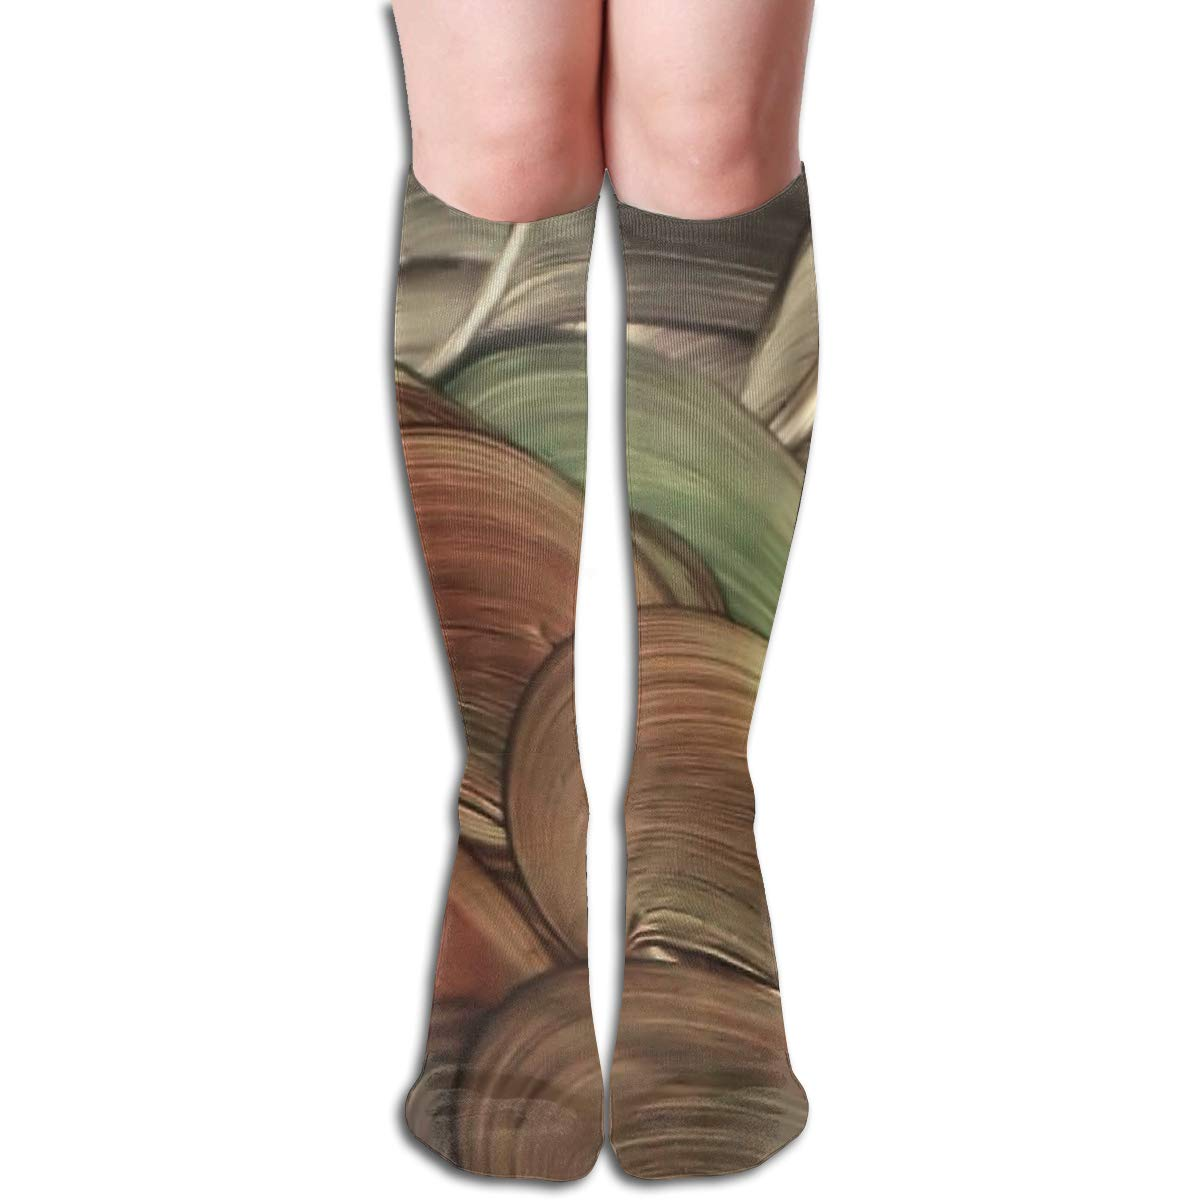 Hermes Compression Socks Soccer Socks High Socks For Running,Medical,Athletic,Edema,Varicose Veins,Travel,Nursing.